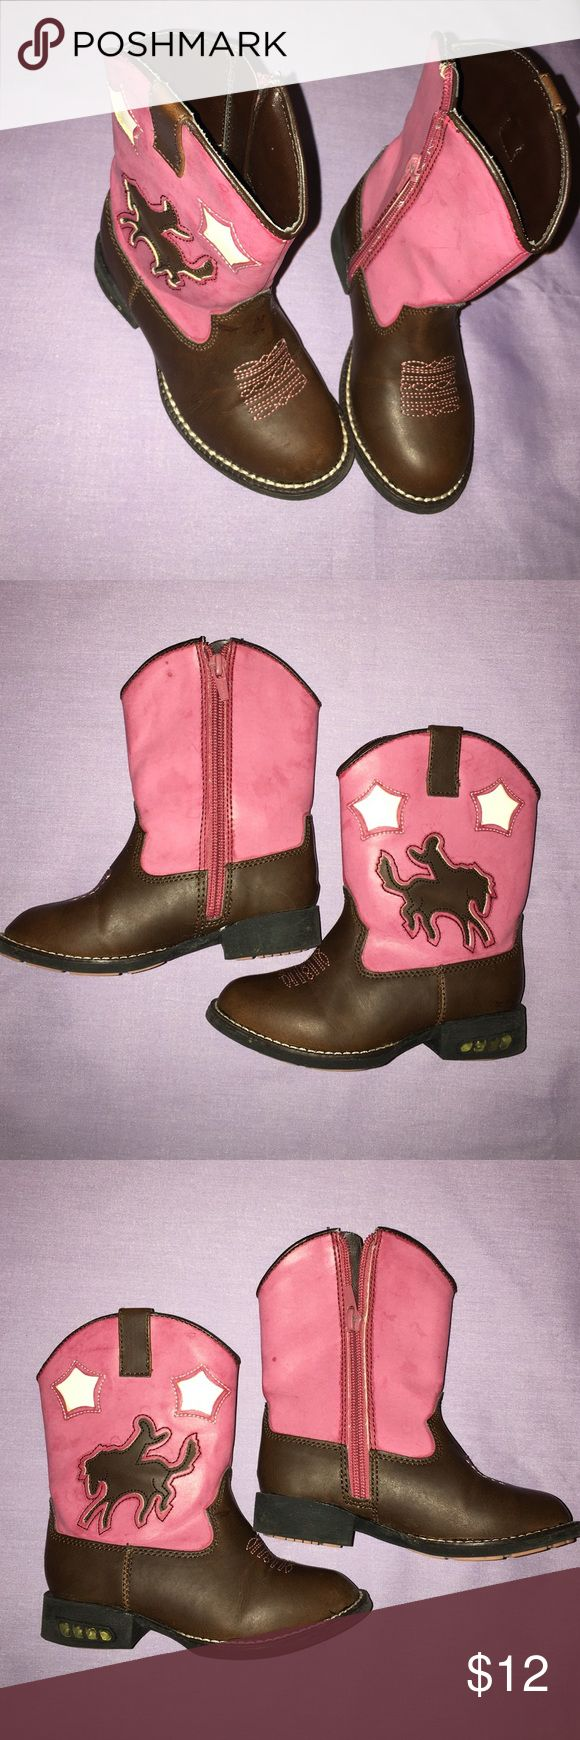 Roper size 8 infant pink cowgirl/cowboy boots Roper pink cowboy boots size 8 infant. In great shape. The pink part of the boot has faint water  marks. They are not dirty, ripped or stained. Roper Shoes Boots